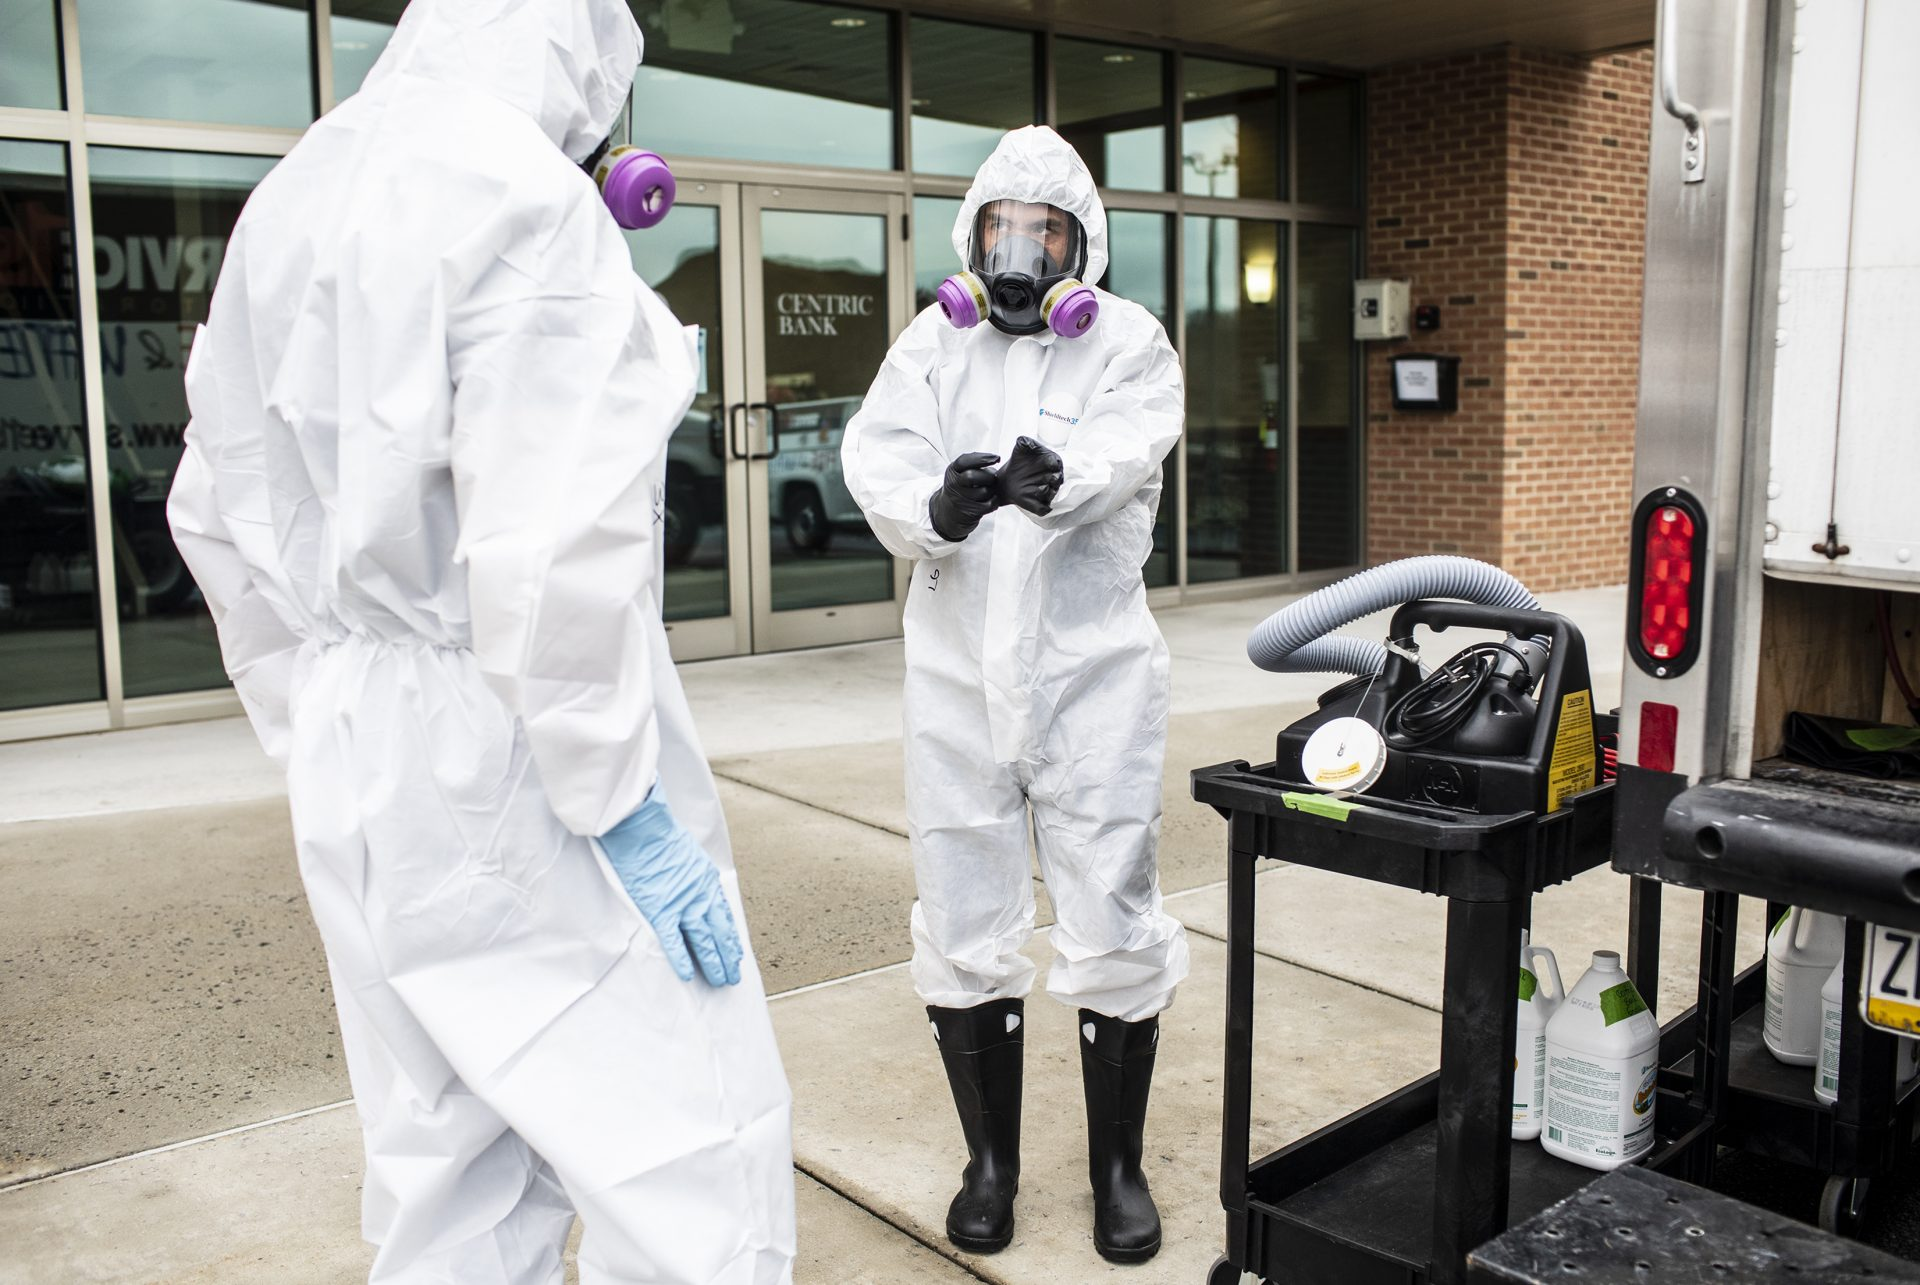 Service 1st Restoration worker Adam Copenhaver prepares to spray disinfectant throughout the Centric Bank corporate headquarters to stop the spread of the coronavirus.